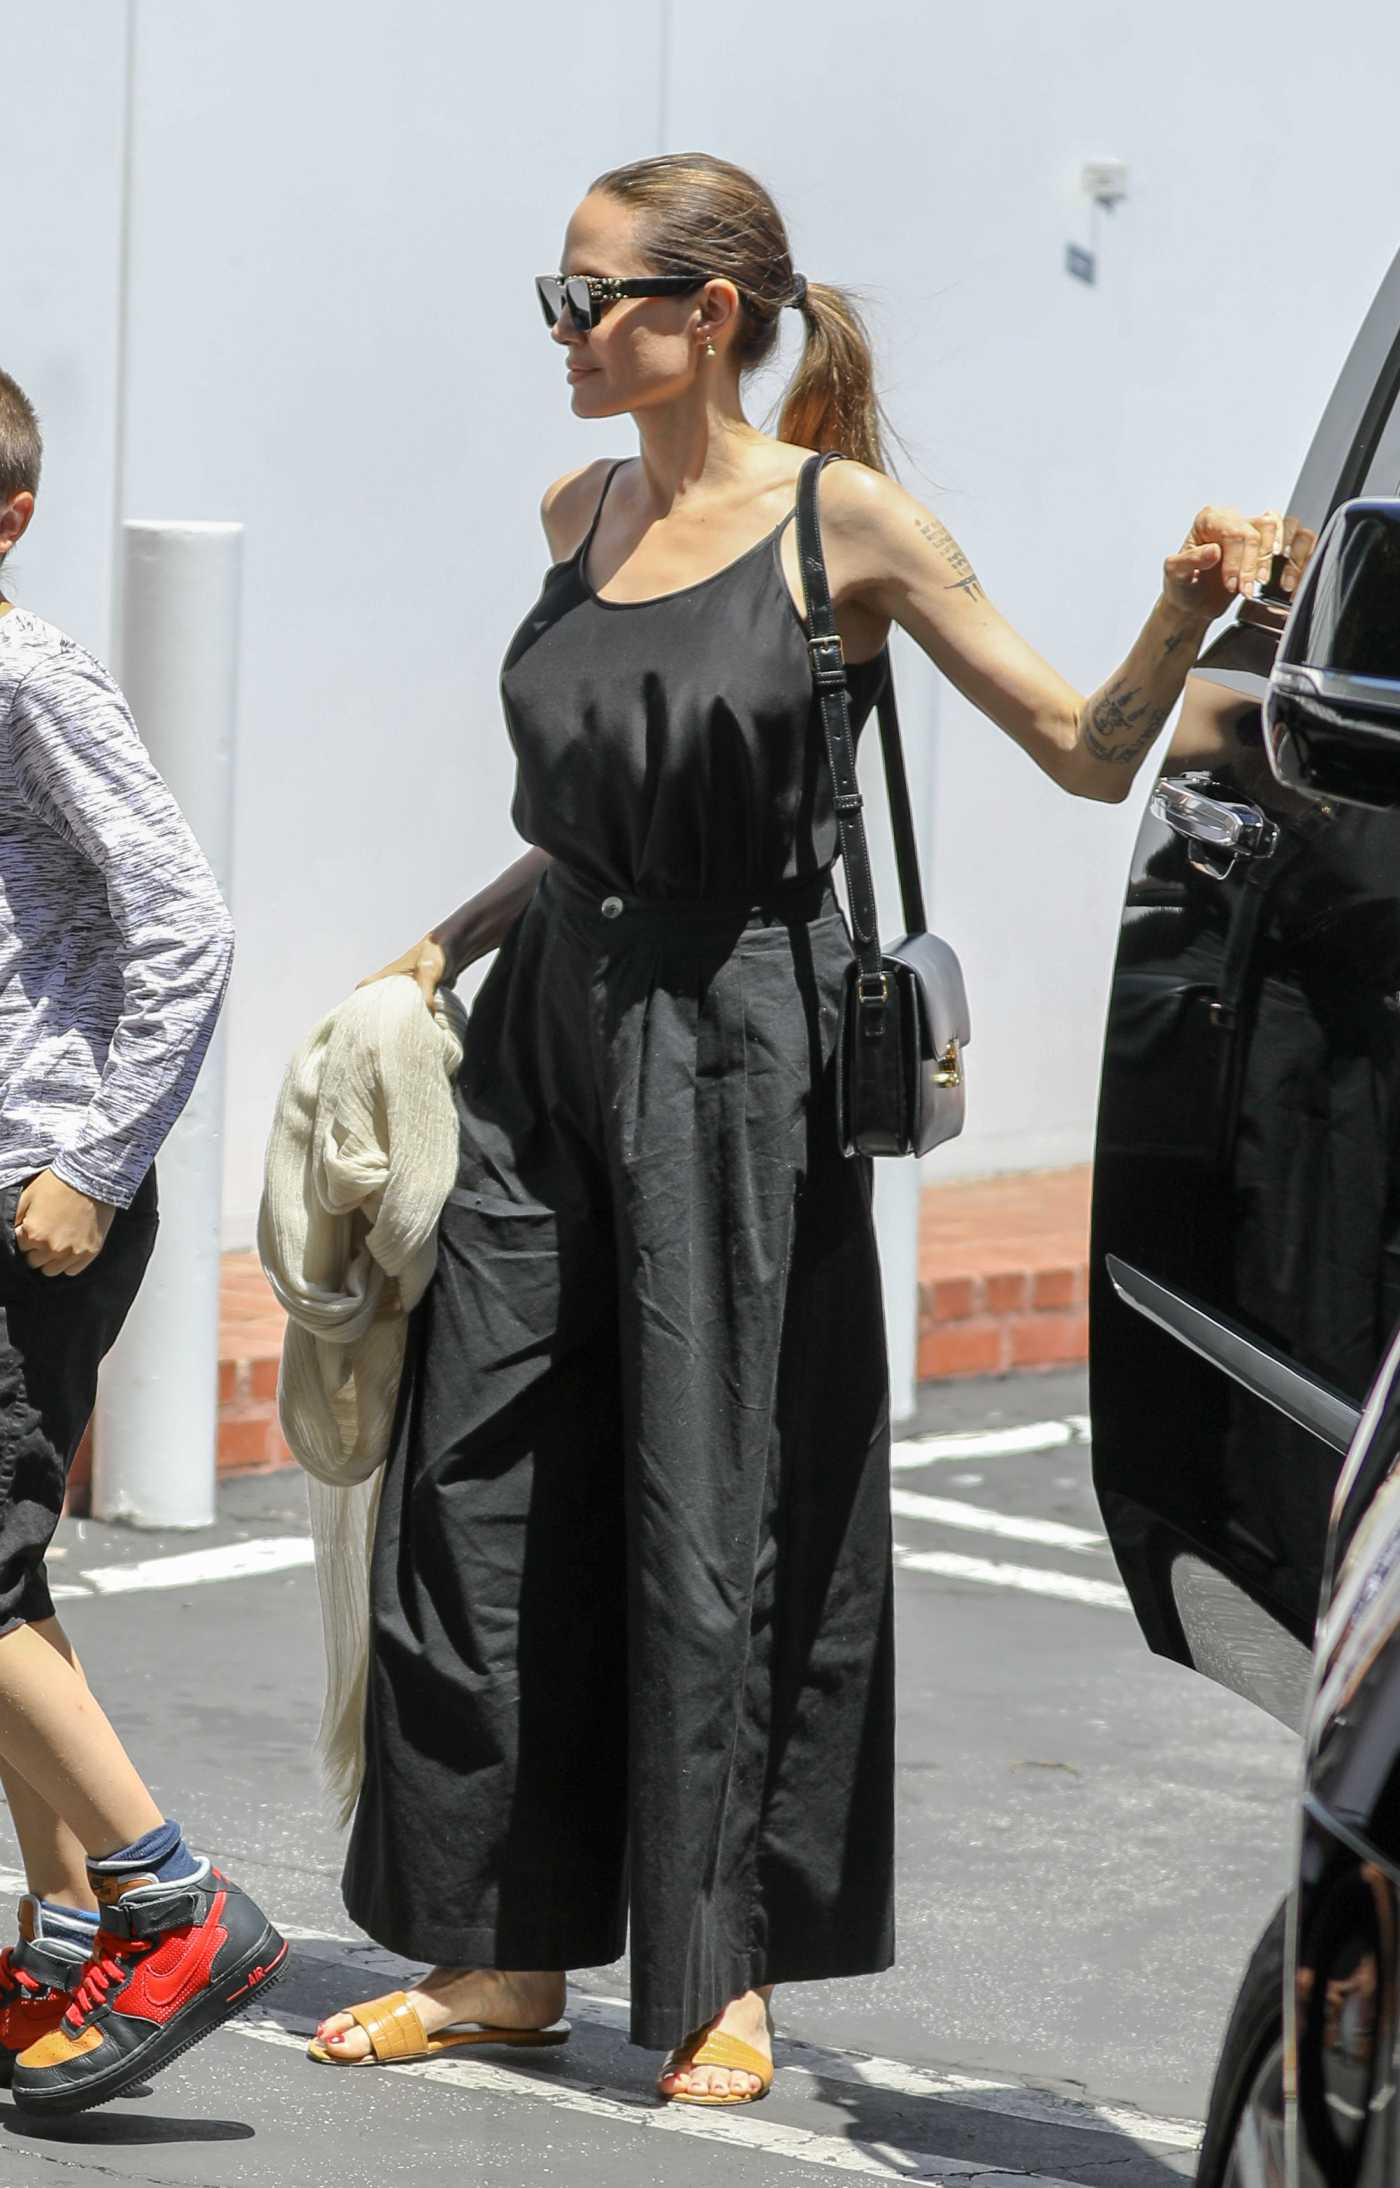 Angelina Jolie in a Black Pants Was Seen Out with Her Daughter Vivenne in West Hollywood 08/02/2019